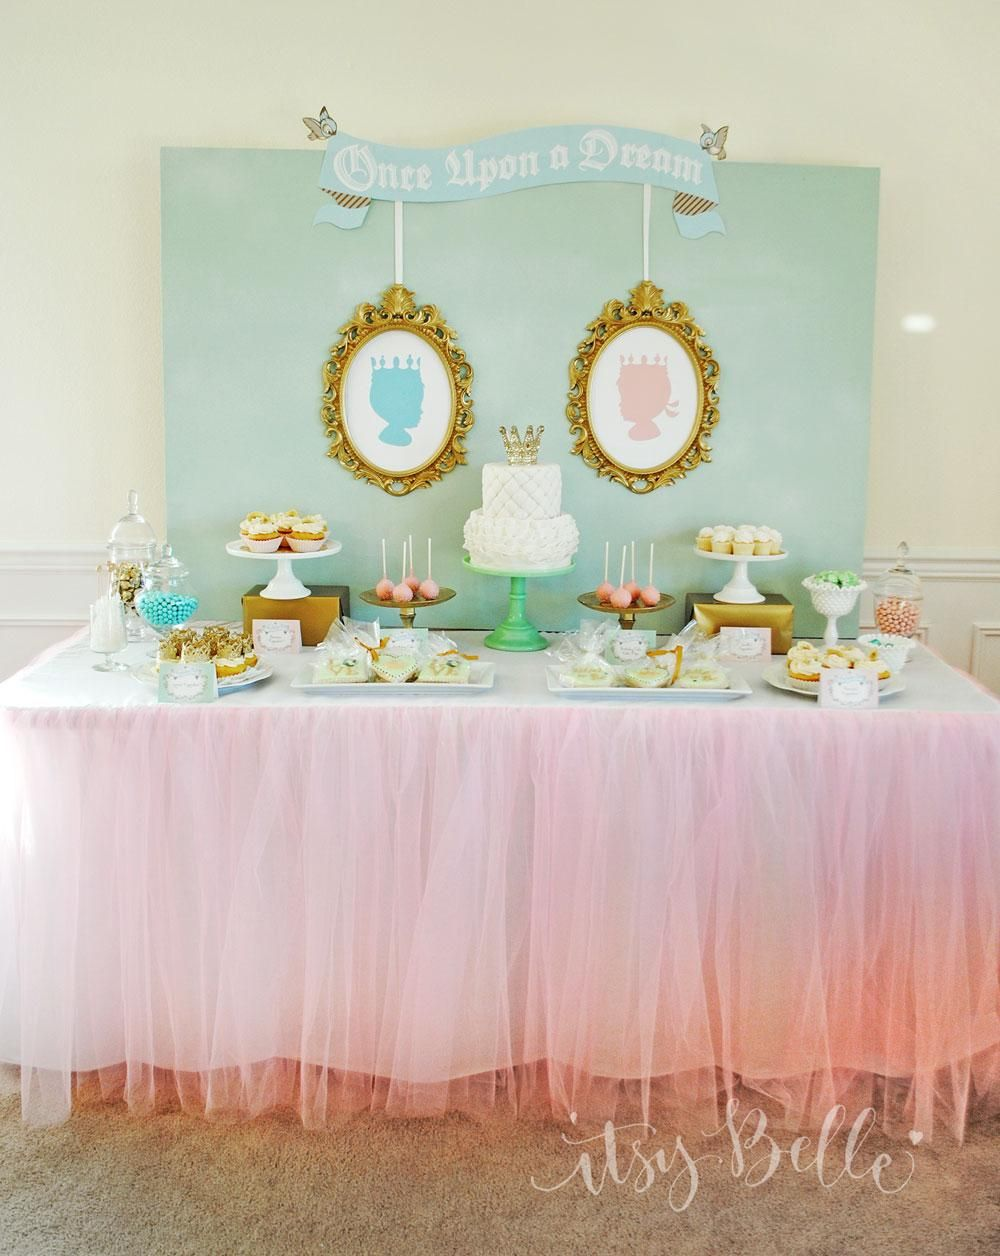 Baby shower decorations for boy and girl twins 2 shower for Baby shower decoration ideas for twins